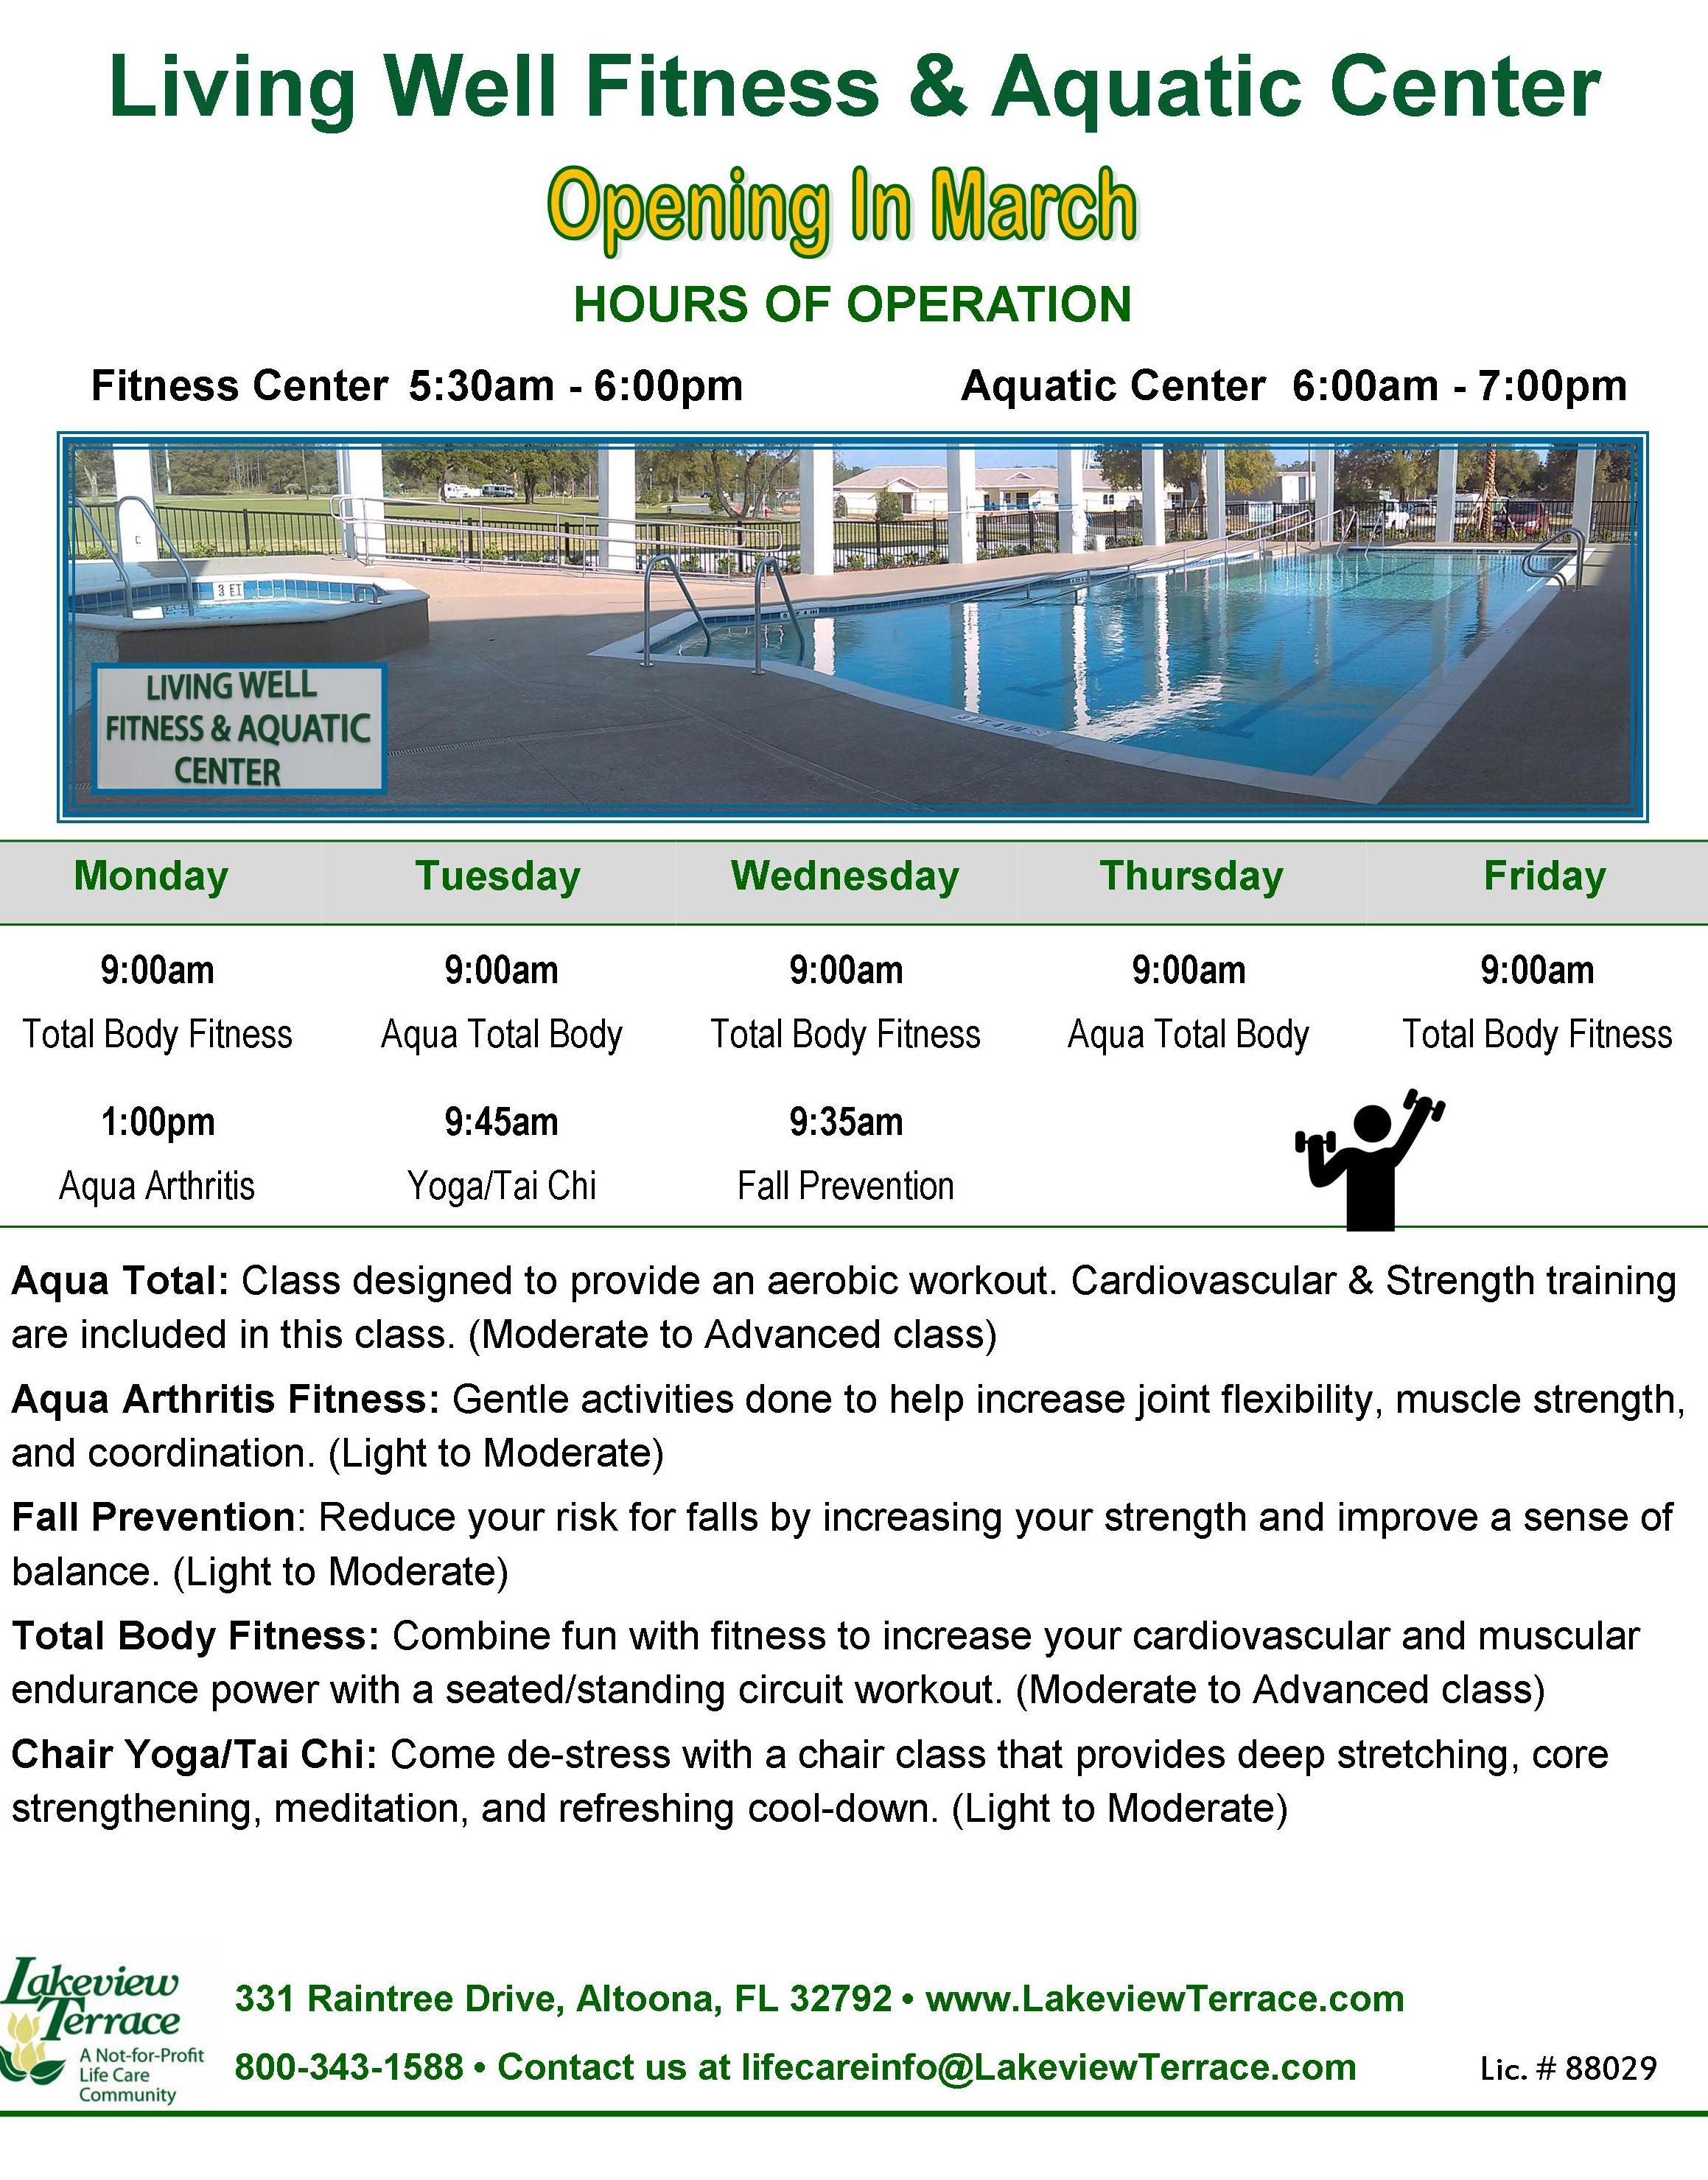 Living Well Fitness & Aquatic Center